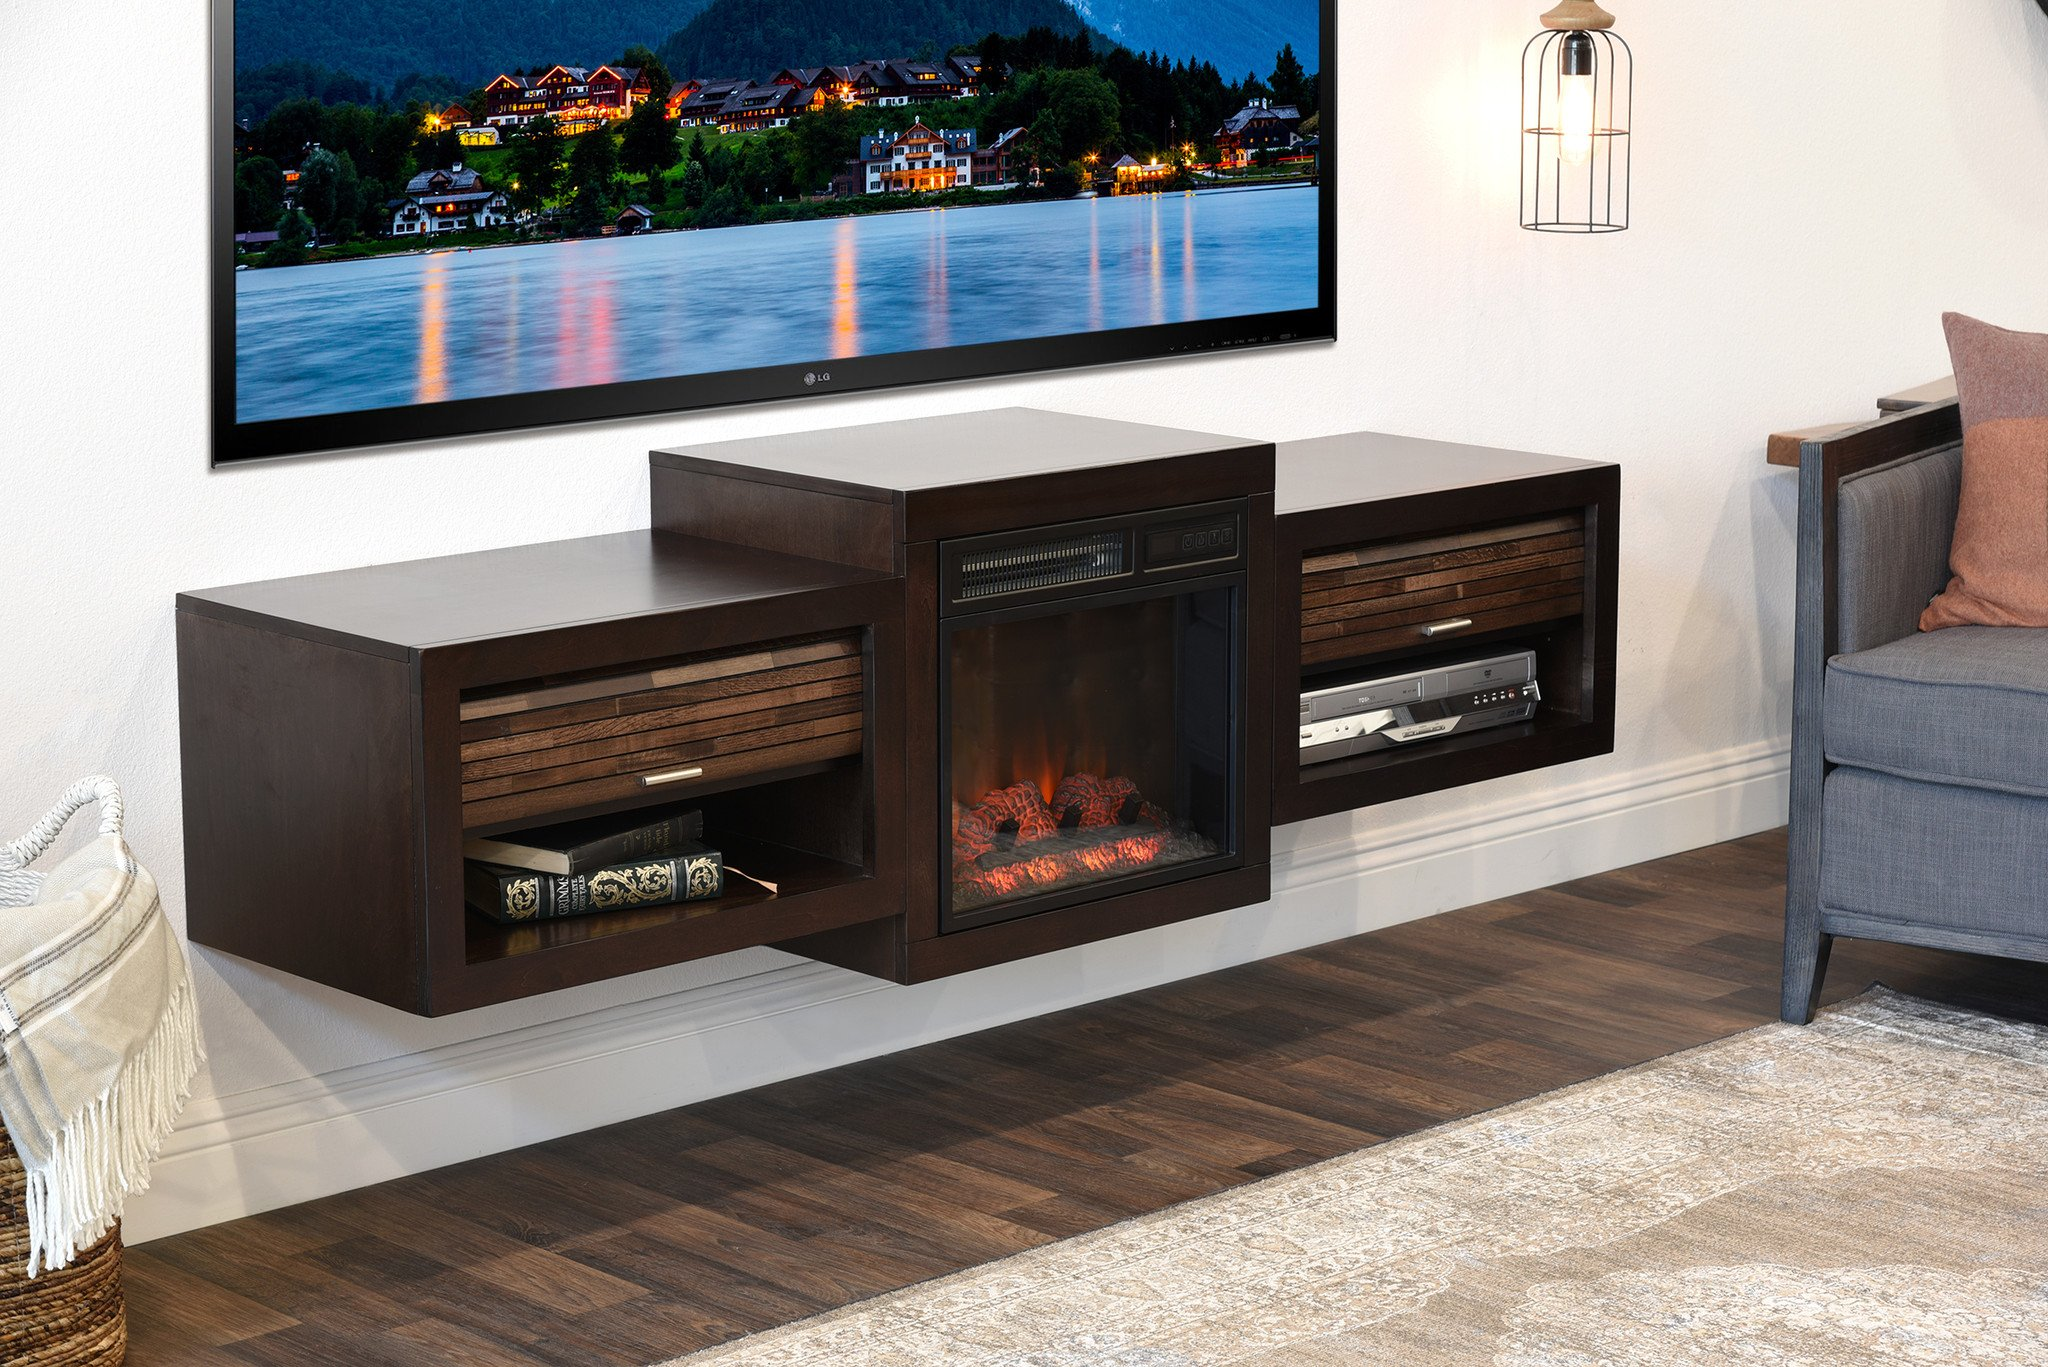 Fireplace Contemporary Furniture Floating FLoating TV Console With Fireplace Eco Geo Espresso 2048x